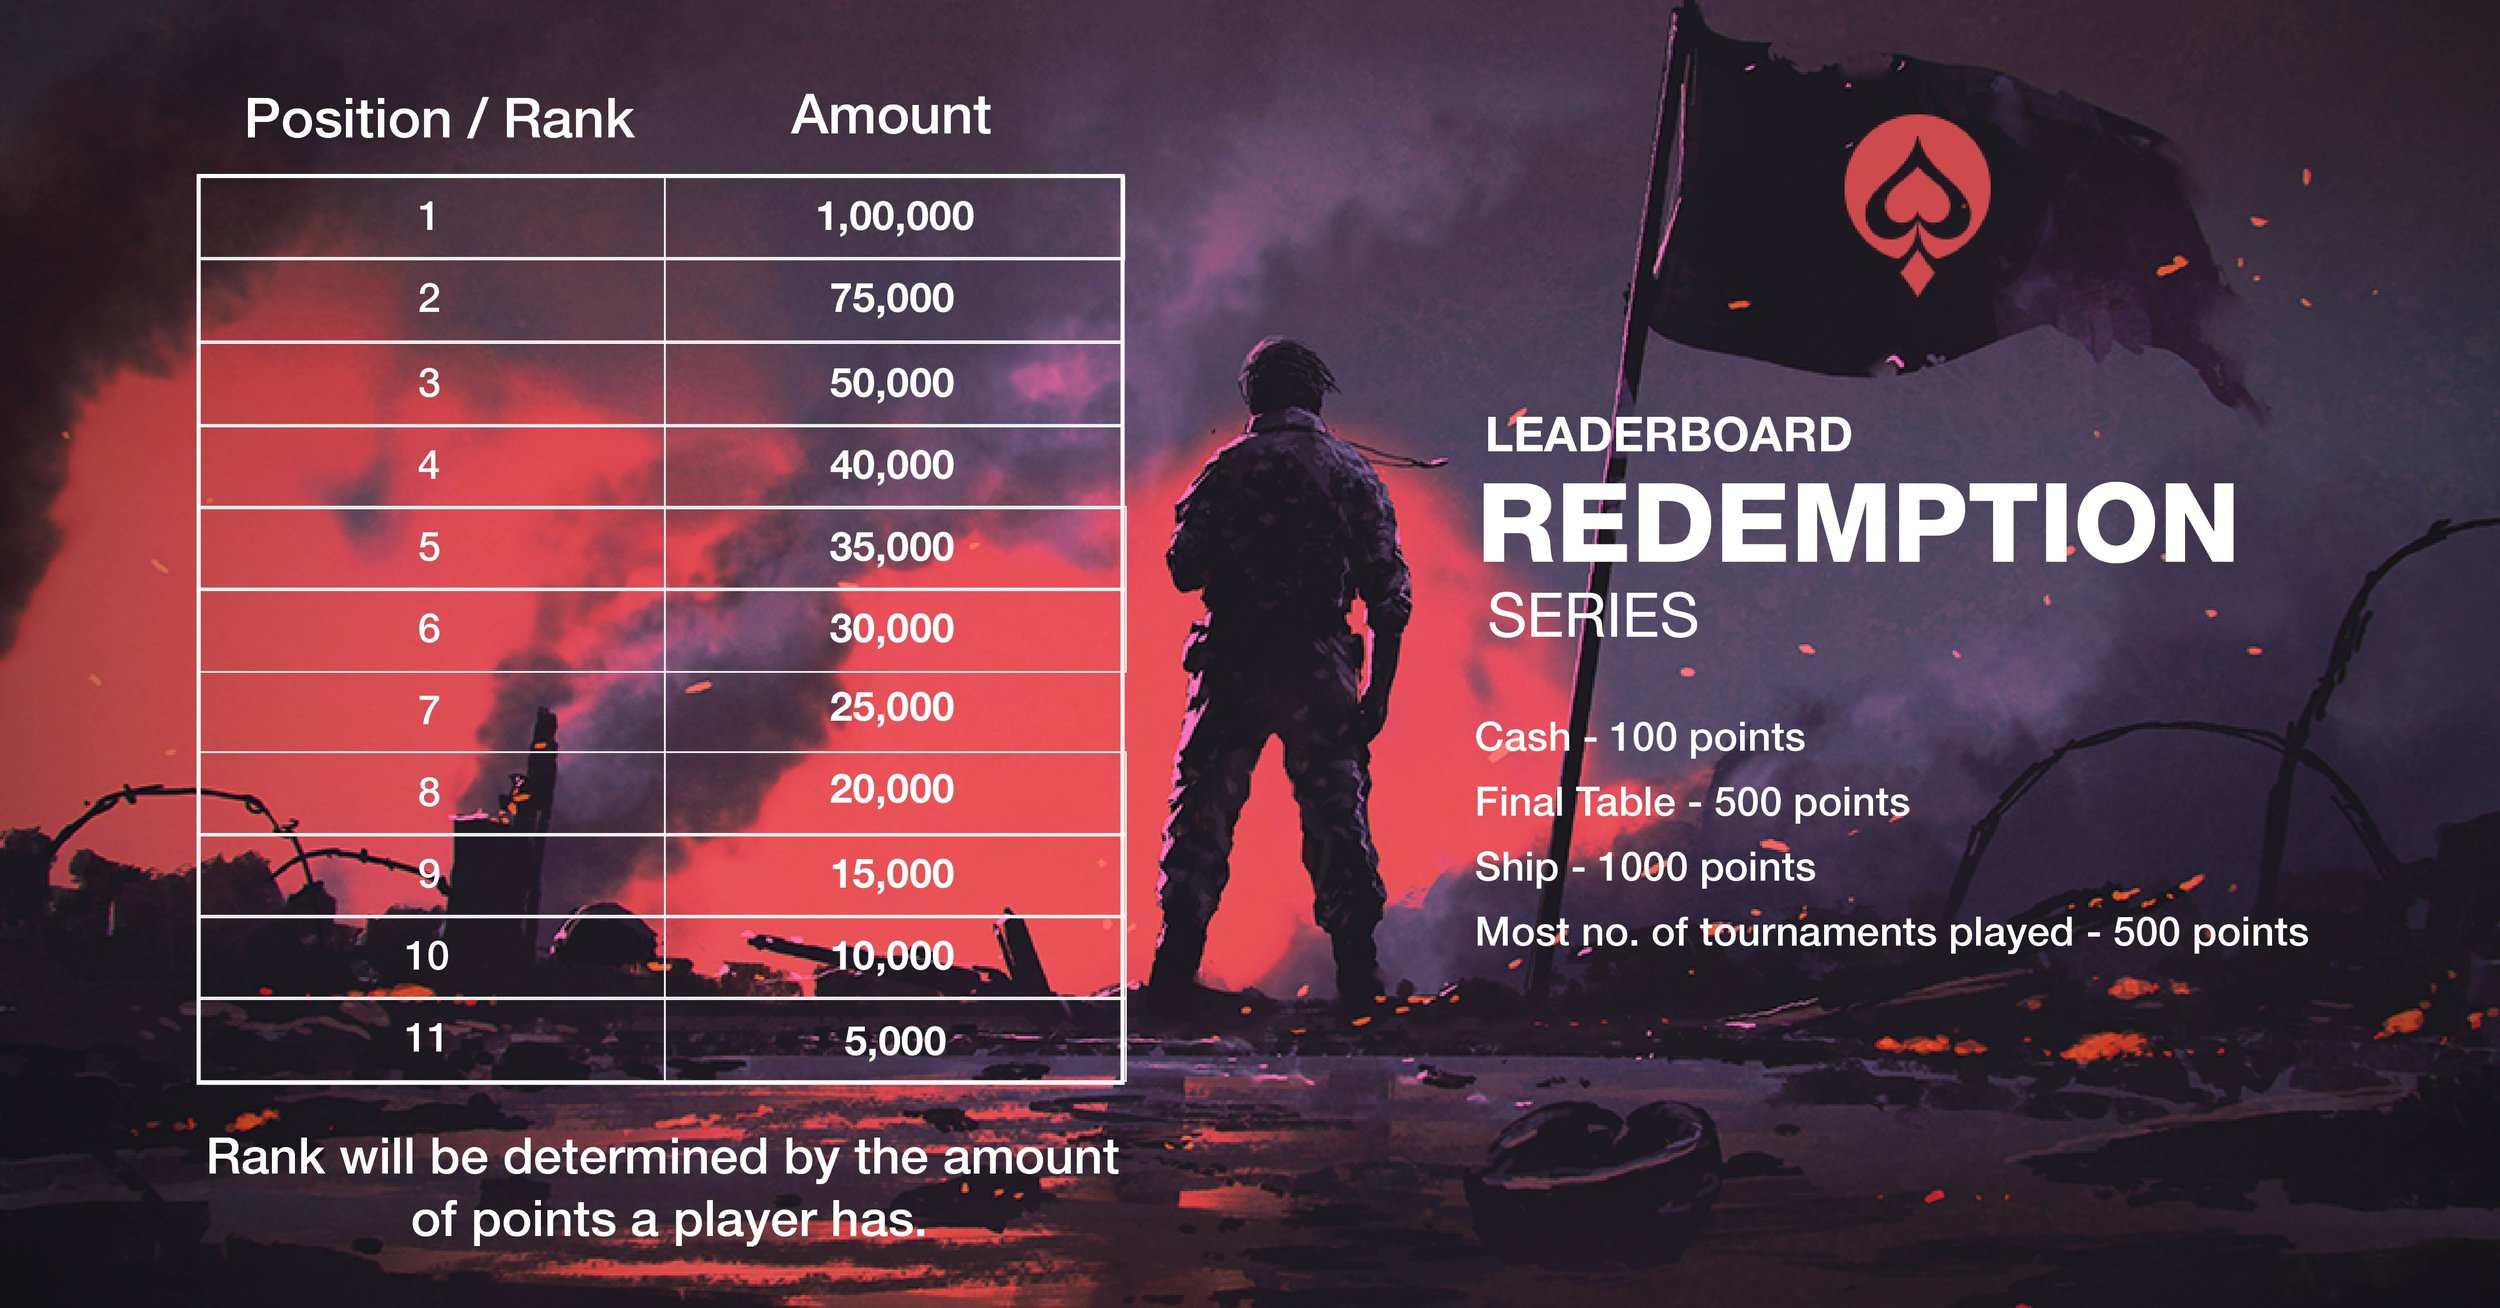 UMA Poker Redemption Series Leader Board